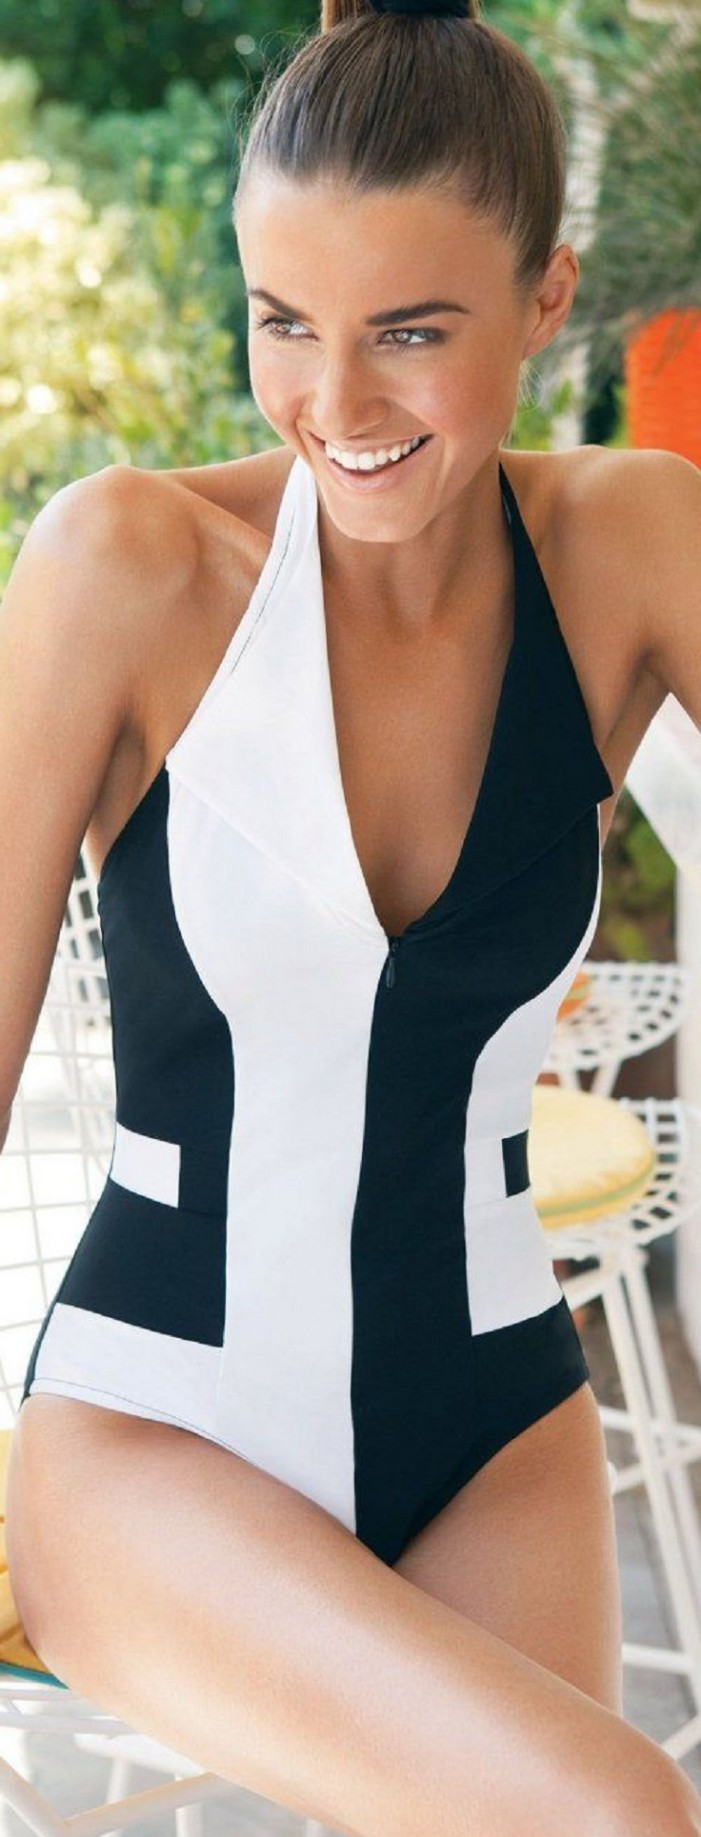 Top 10 Swimwear Trends For Summer 2017